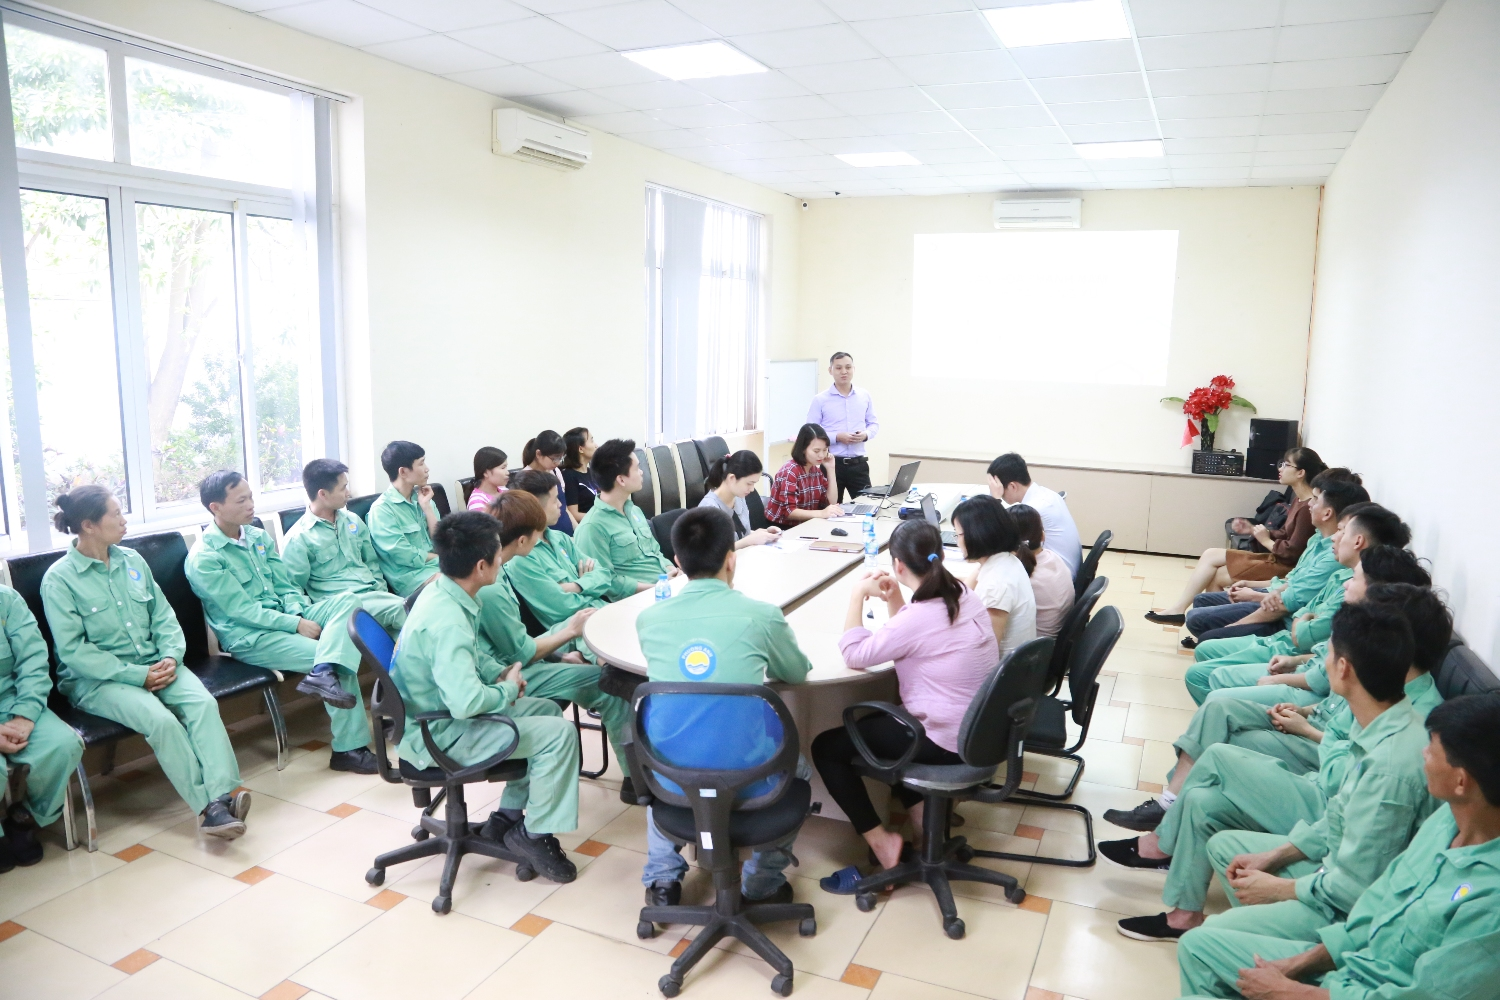 Phuong Anh Group develops training to build corporate culture